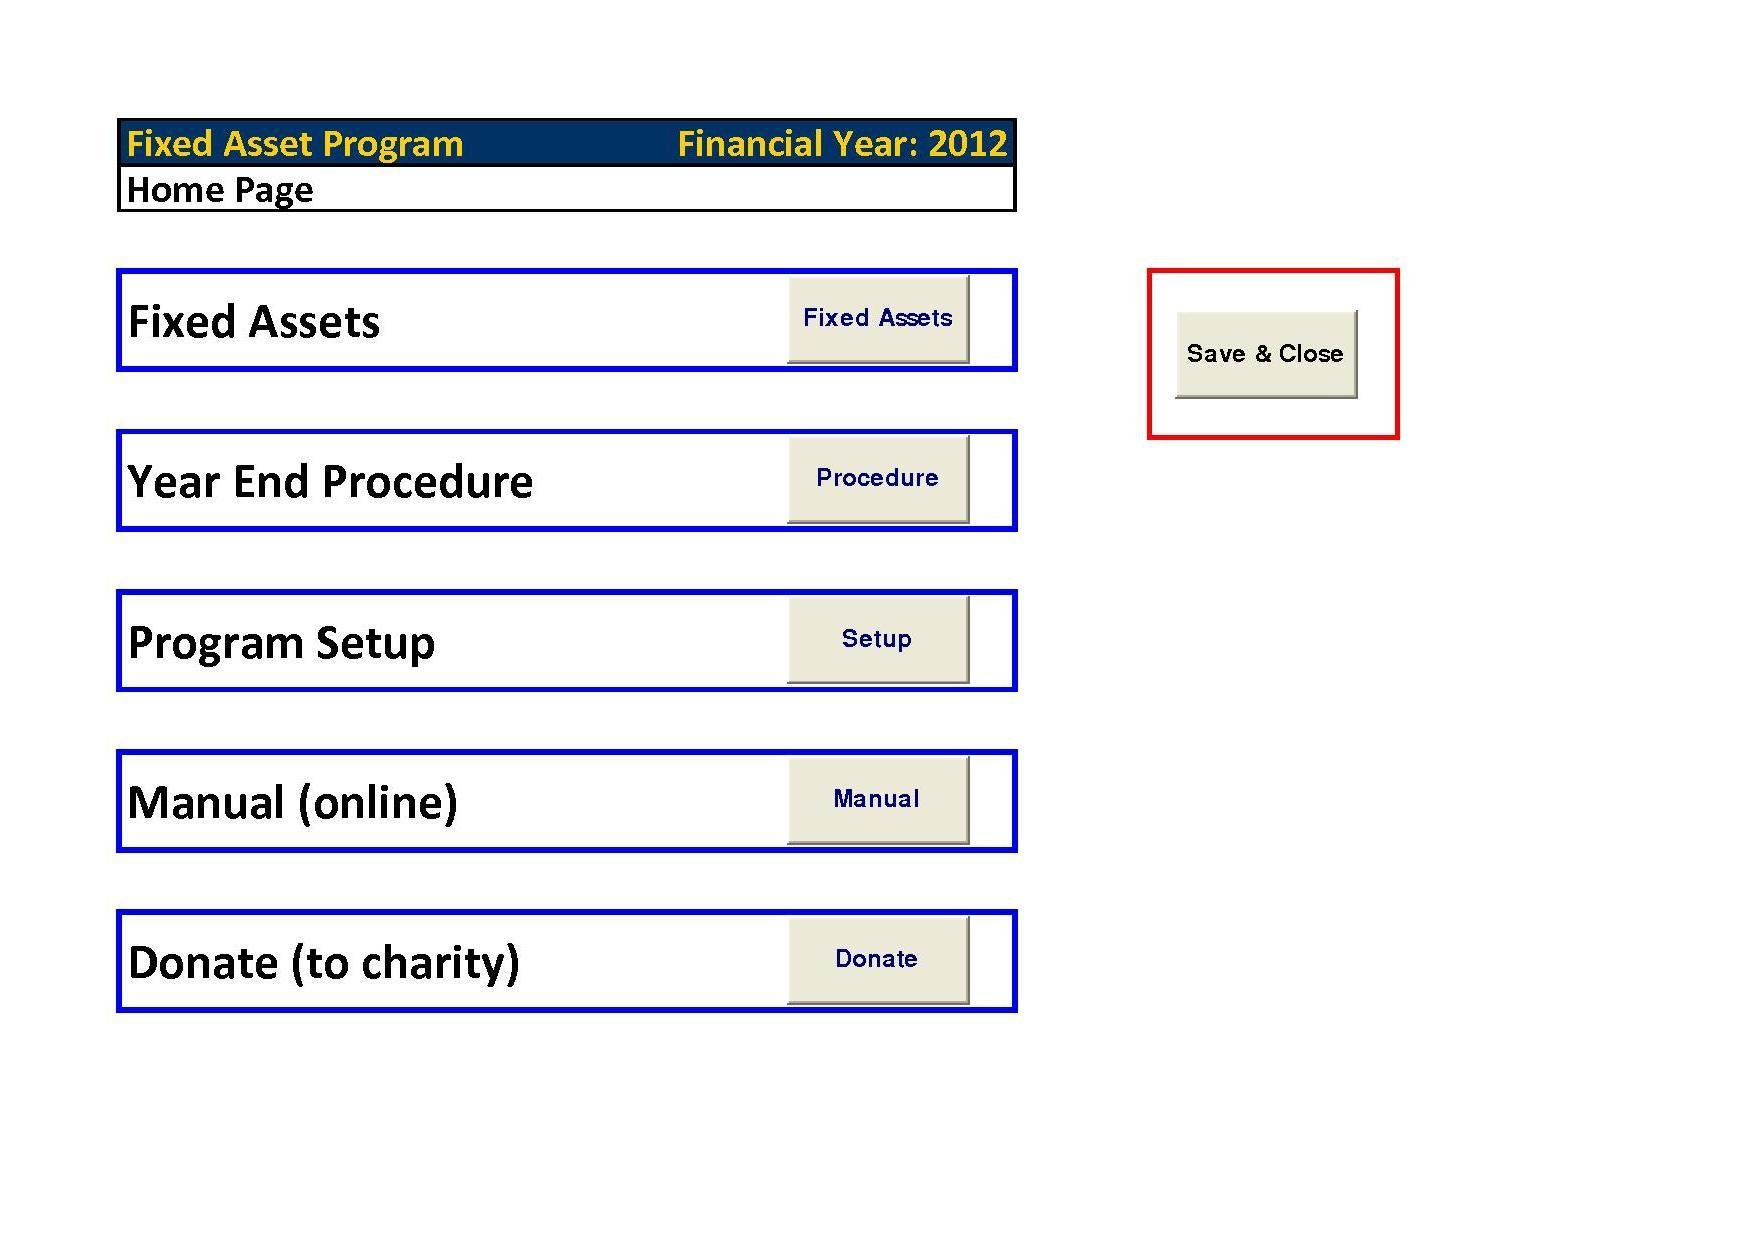 Fixed assets pro excel download sourceforge home page fixed asset page pronofoot35fo Image collections